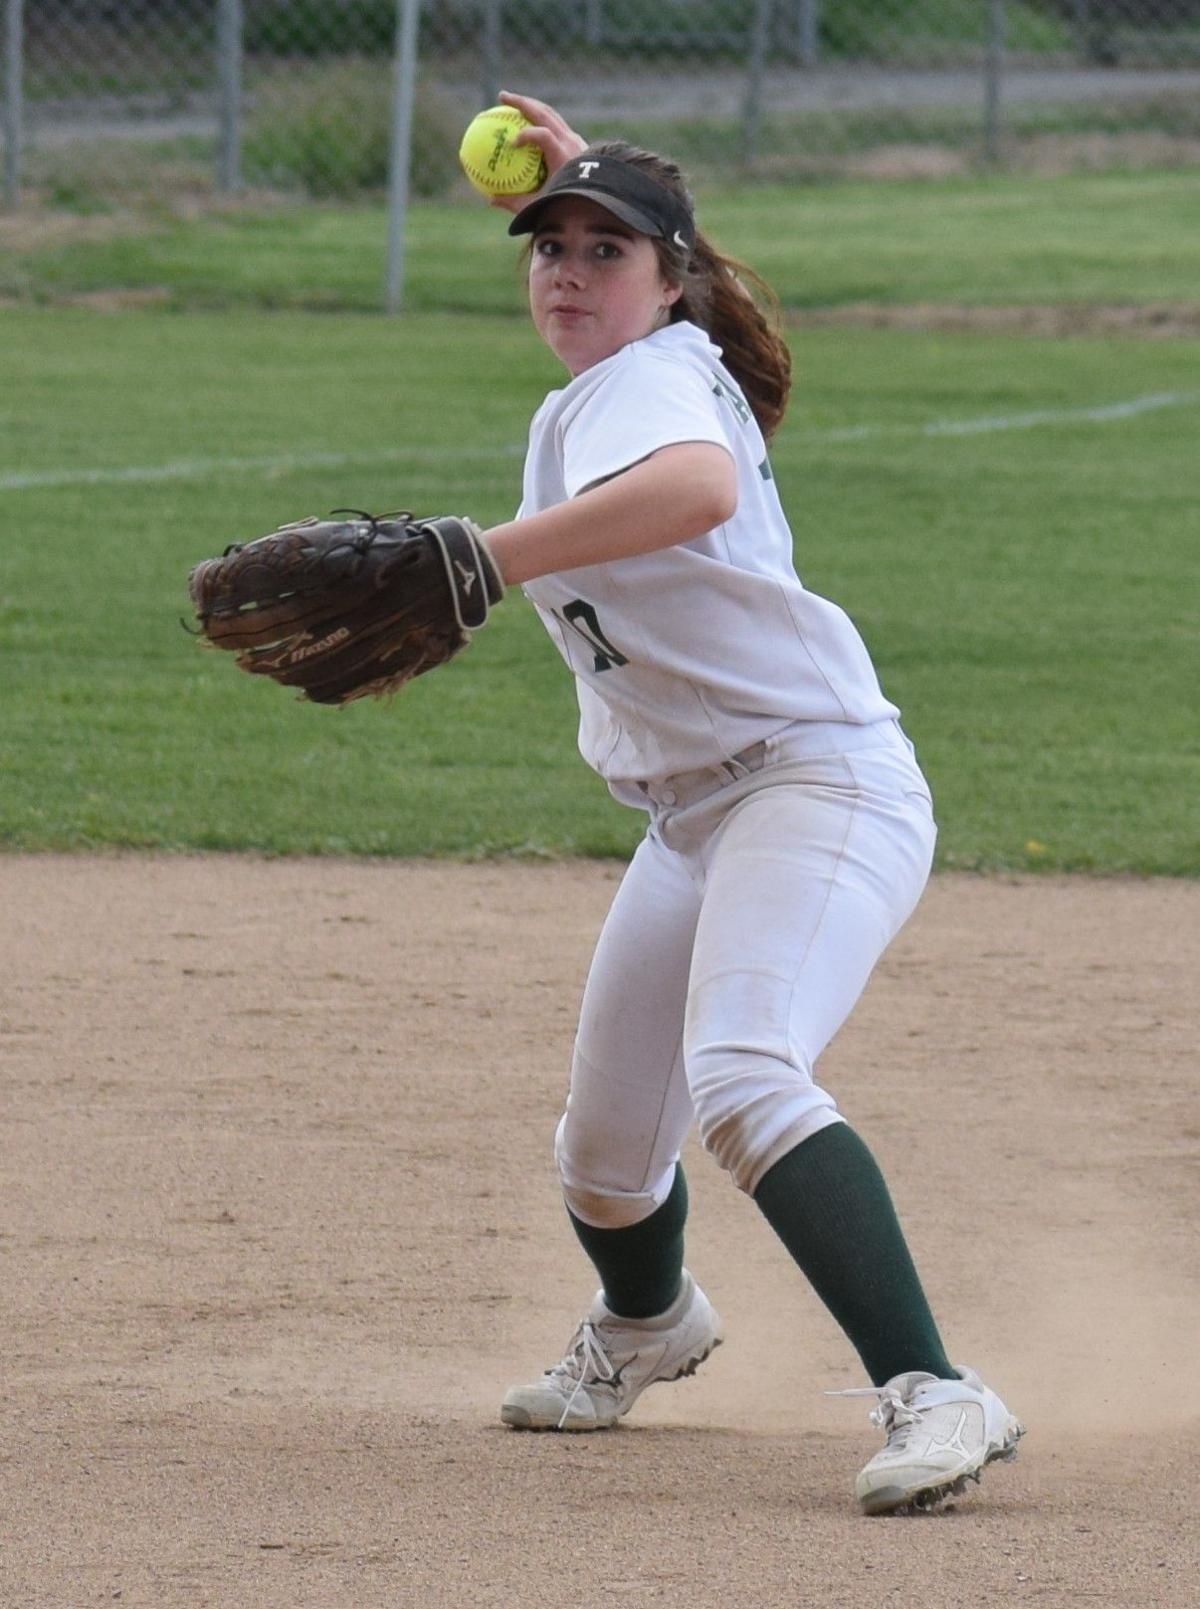 Emma Barret making the play at short stop. By Melissa Davis.JPG